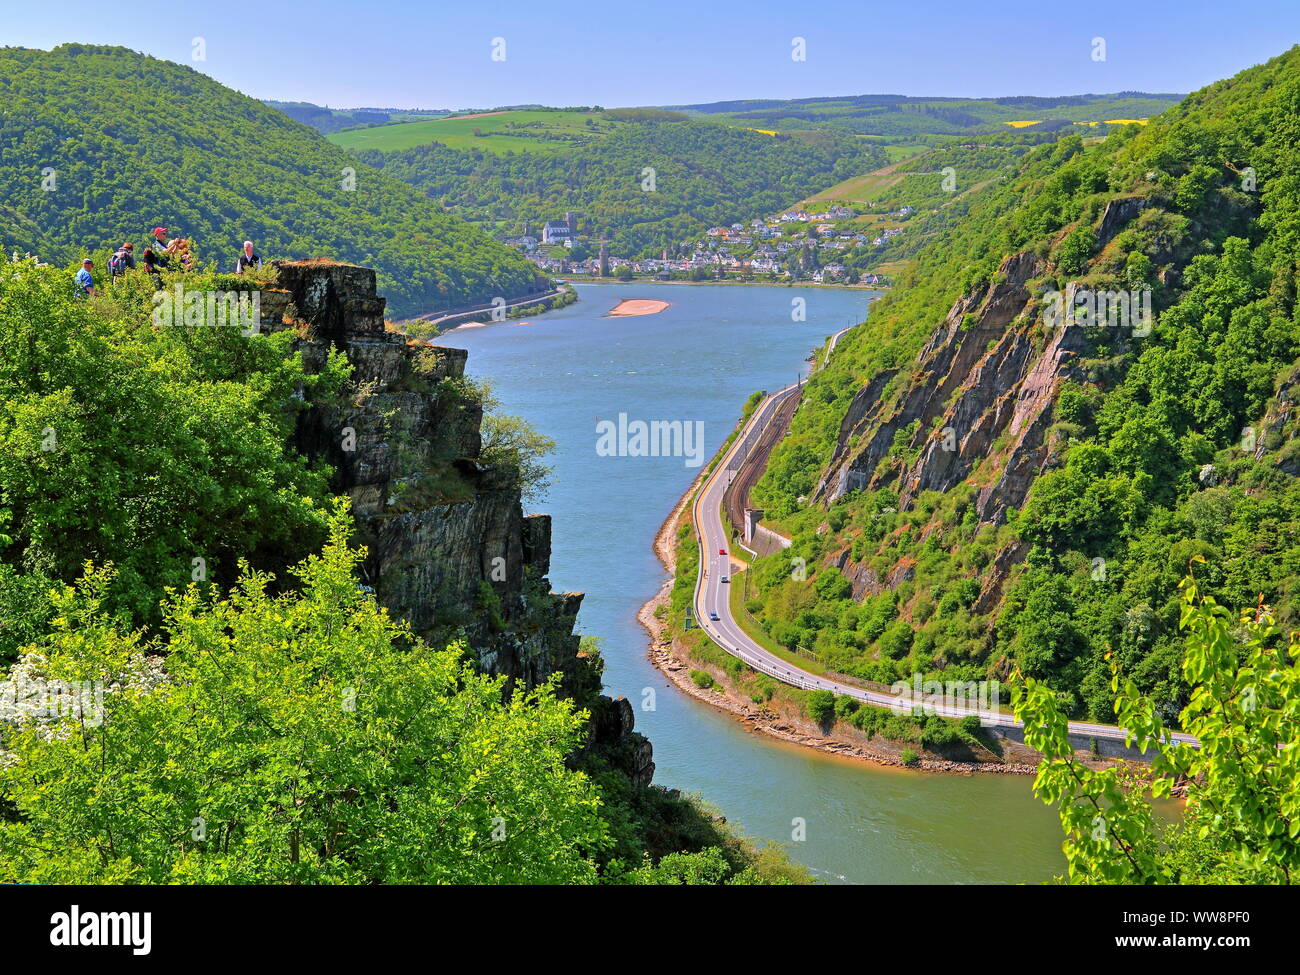 Rhine valley south of the Loreley rock with view towards Oberwesel, Rhine, Middle Rhine valley, Rhineland-Palatinate, West Germany, Germany Stock Photo